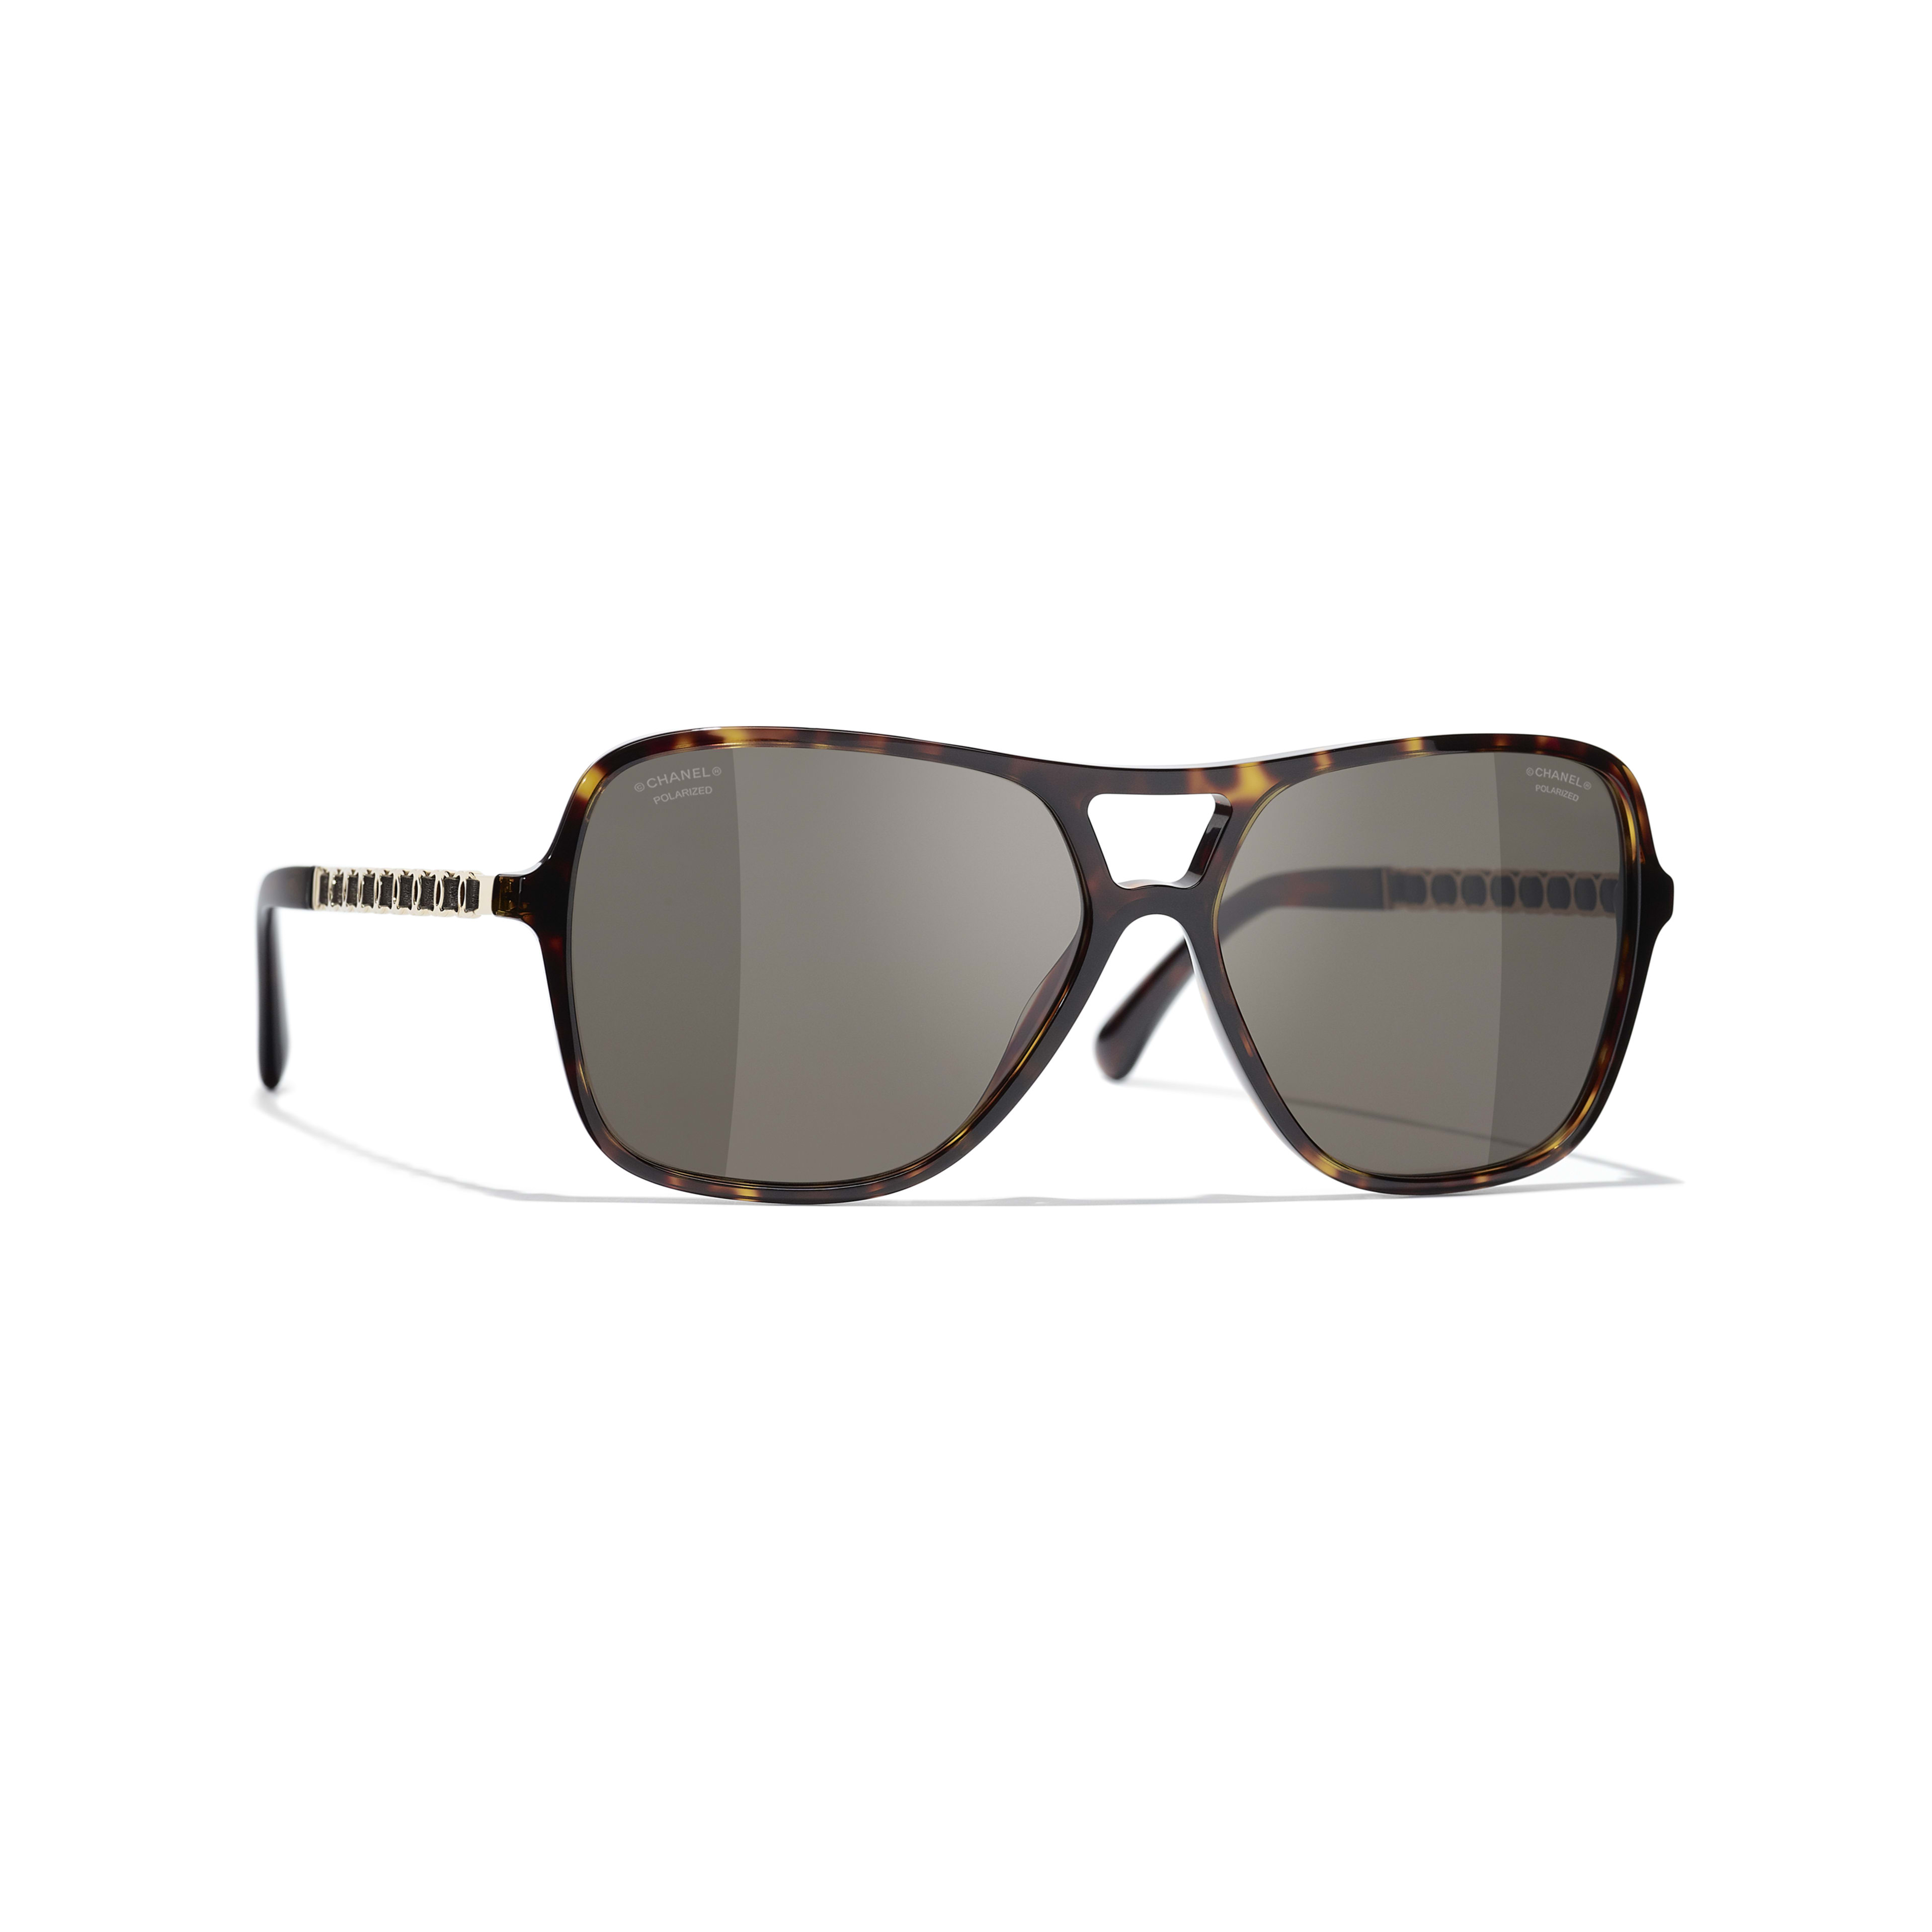 Pilot Sunglasses - Dark Tortoise - Metal & Lambskin - CHANEL - Default view - see standard sized version